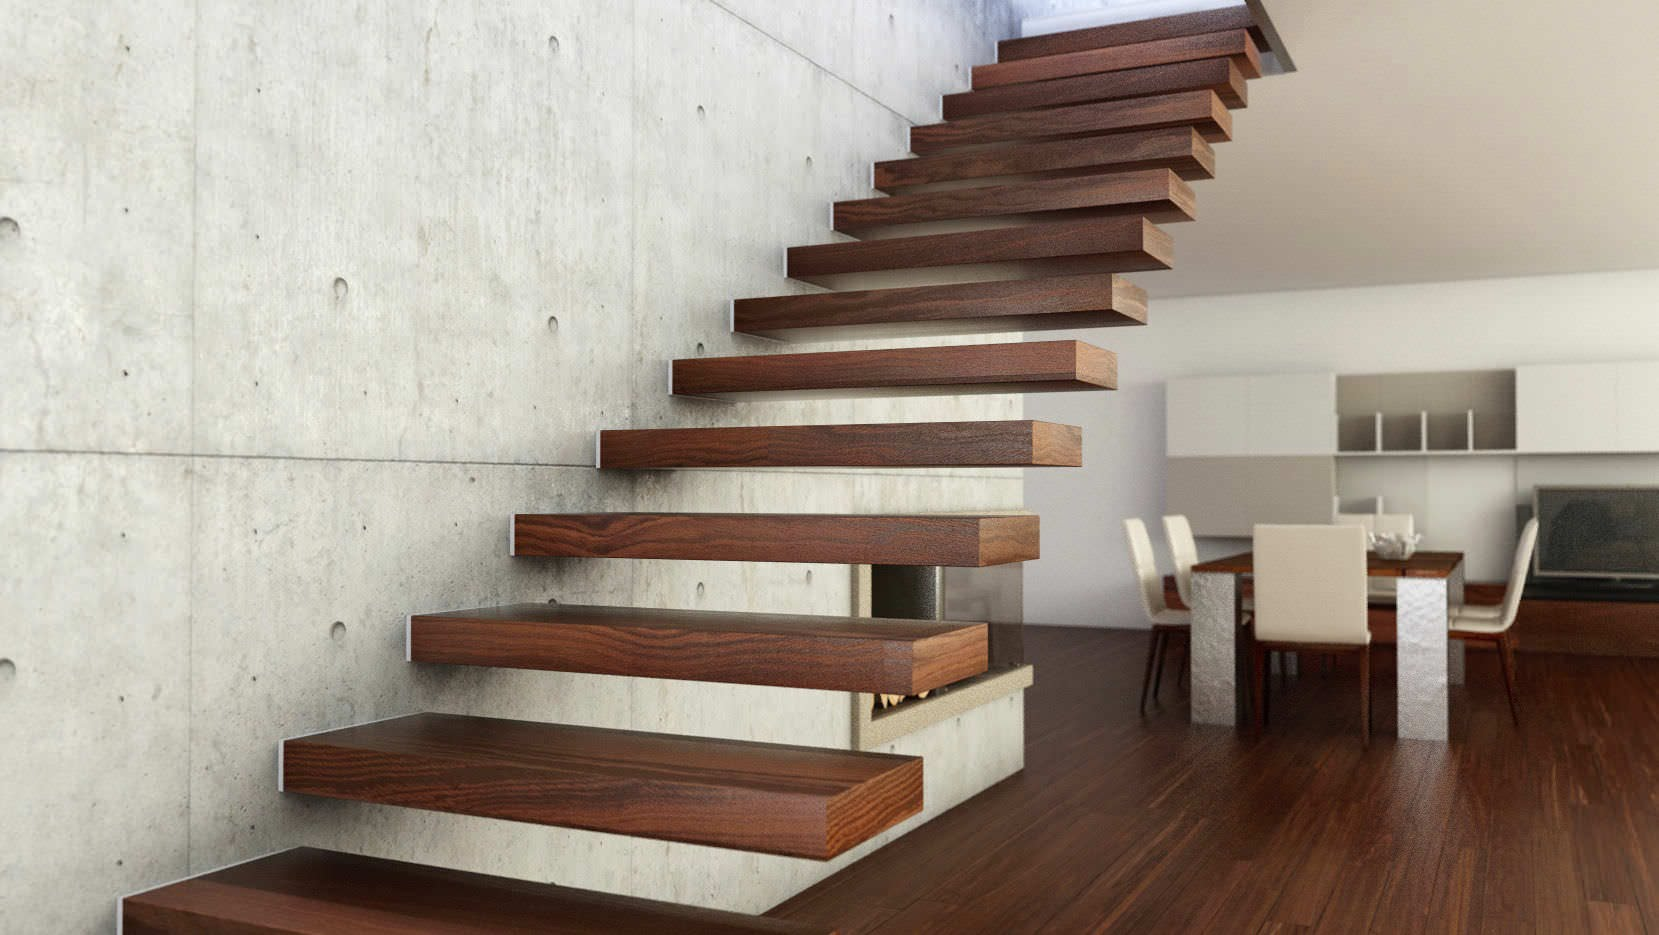 Solved: Floating Stairs